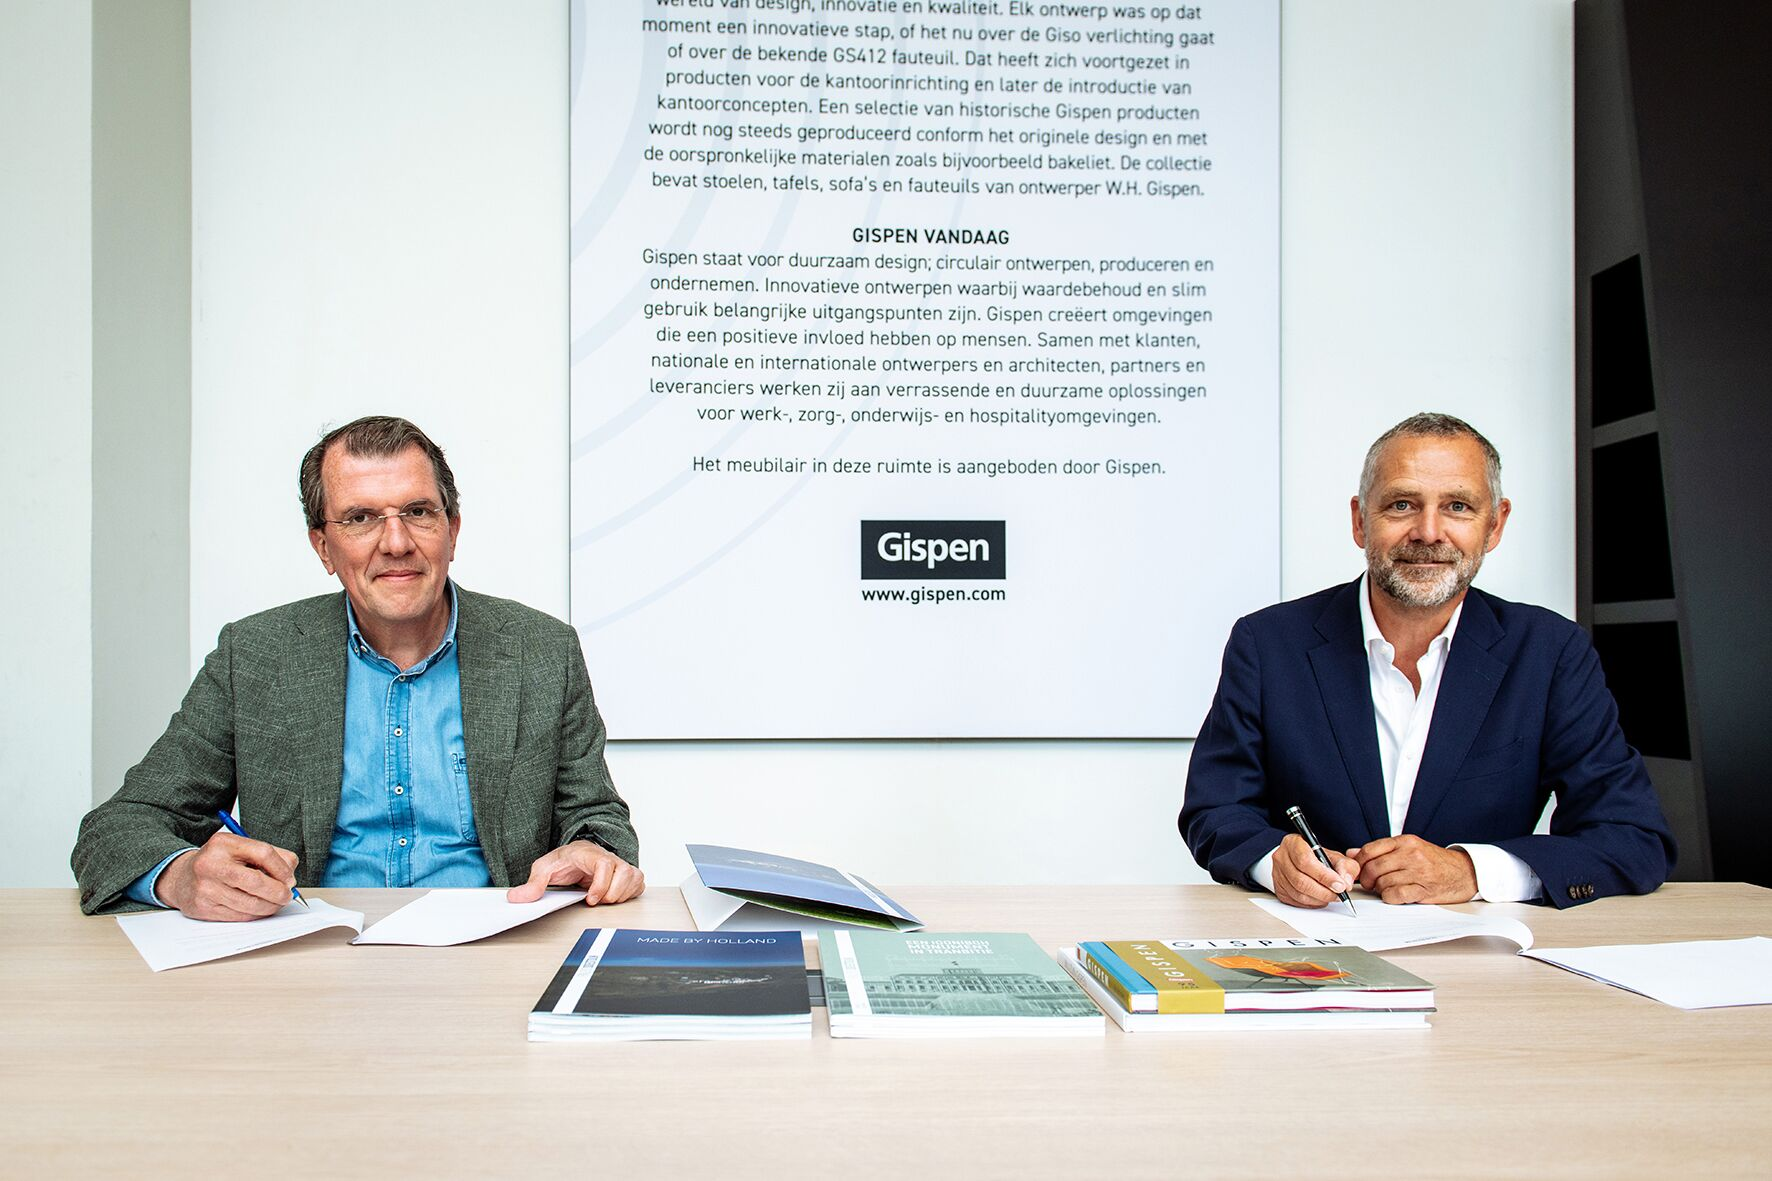 Gispen signing agreement with Made by Holland Paleis Soestdijk in Baarn 02